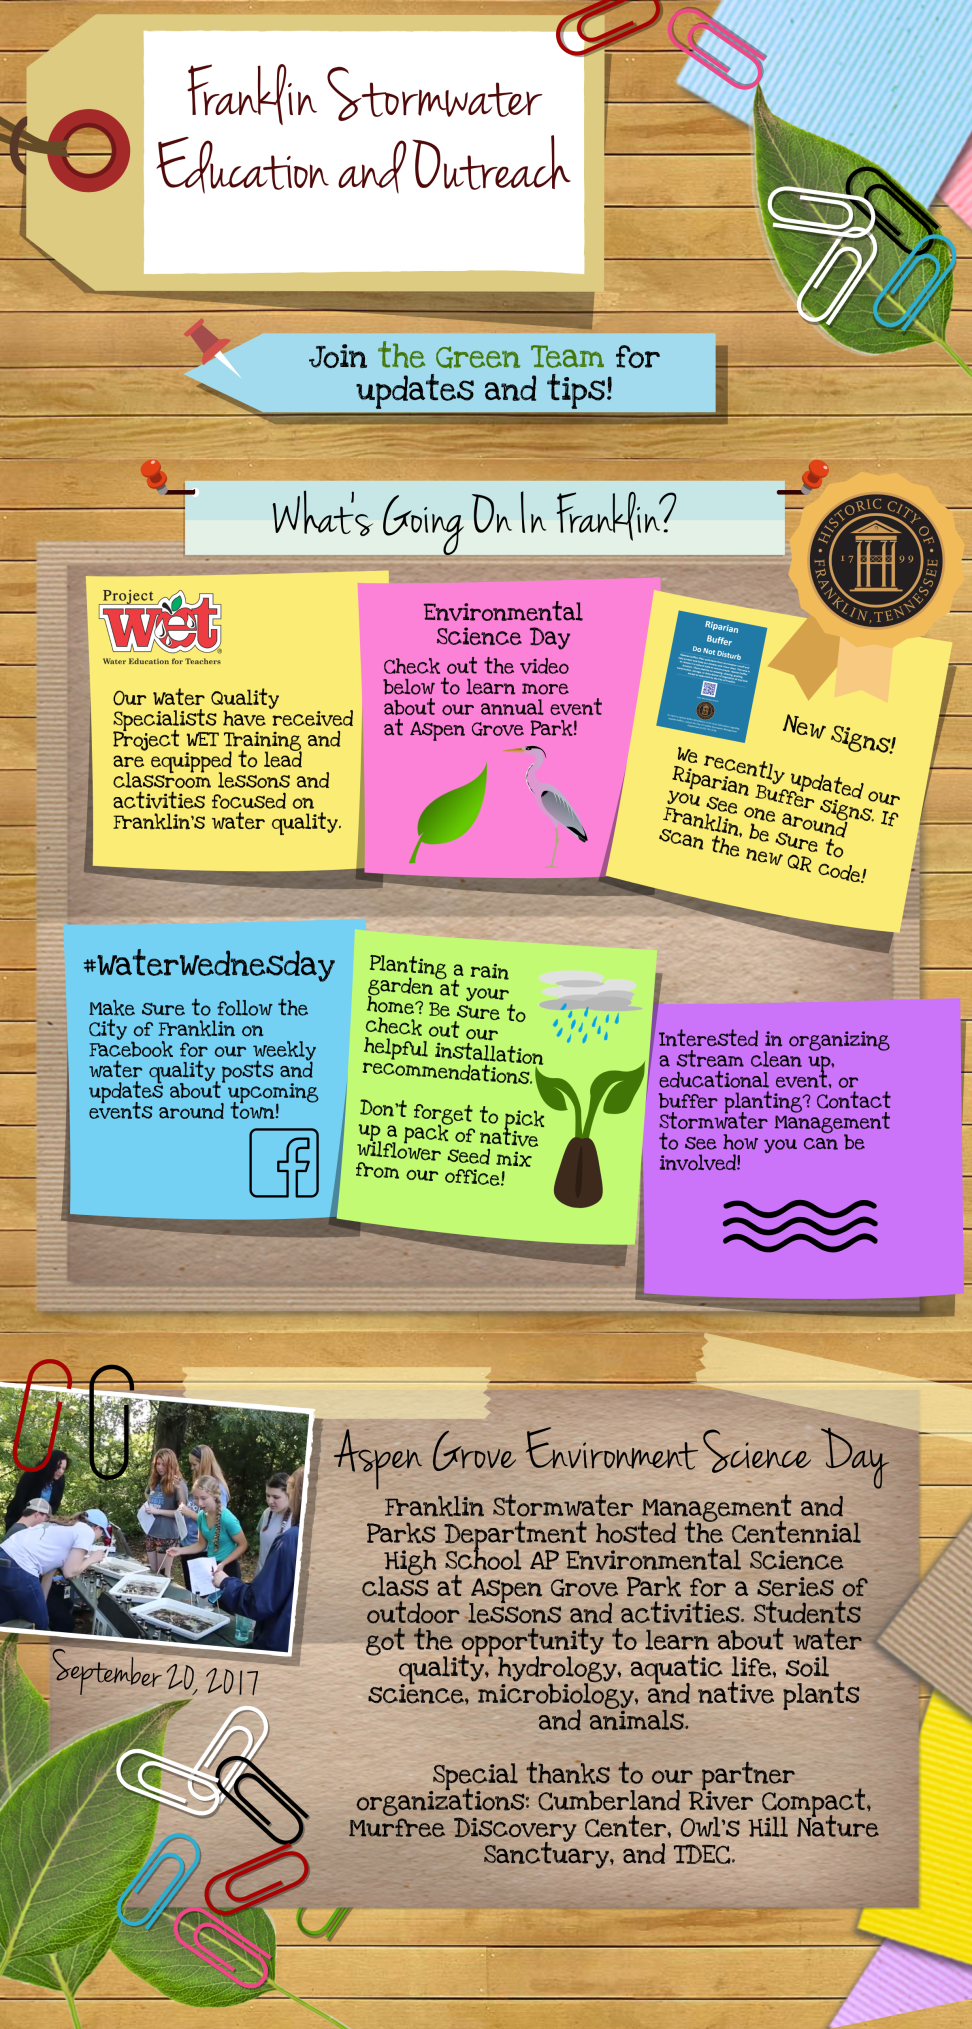 Outreach Infographic showing our past events